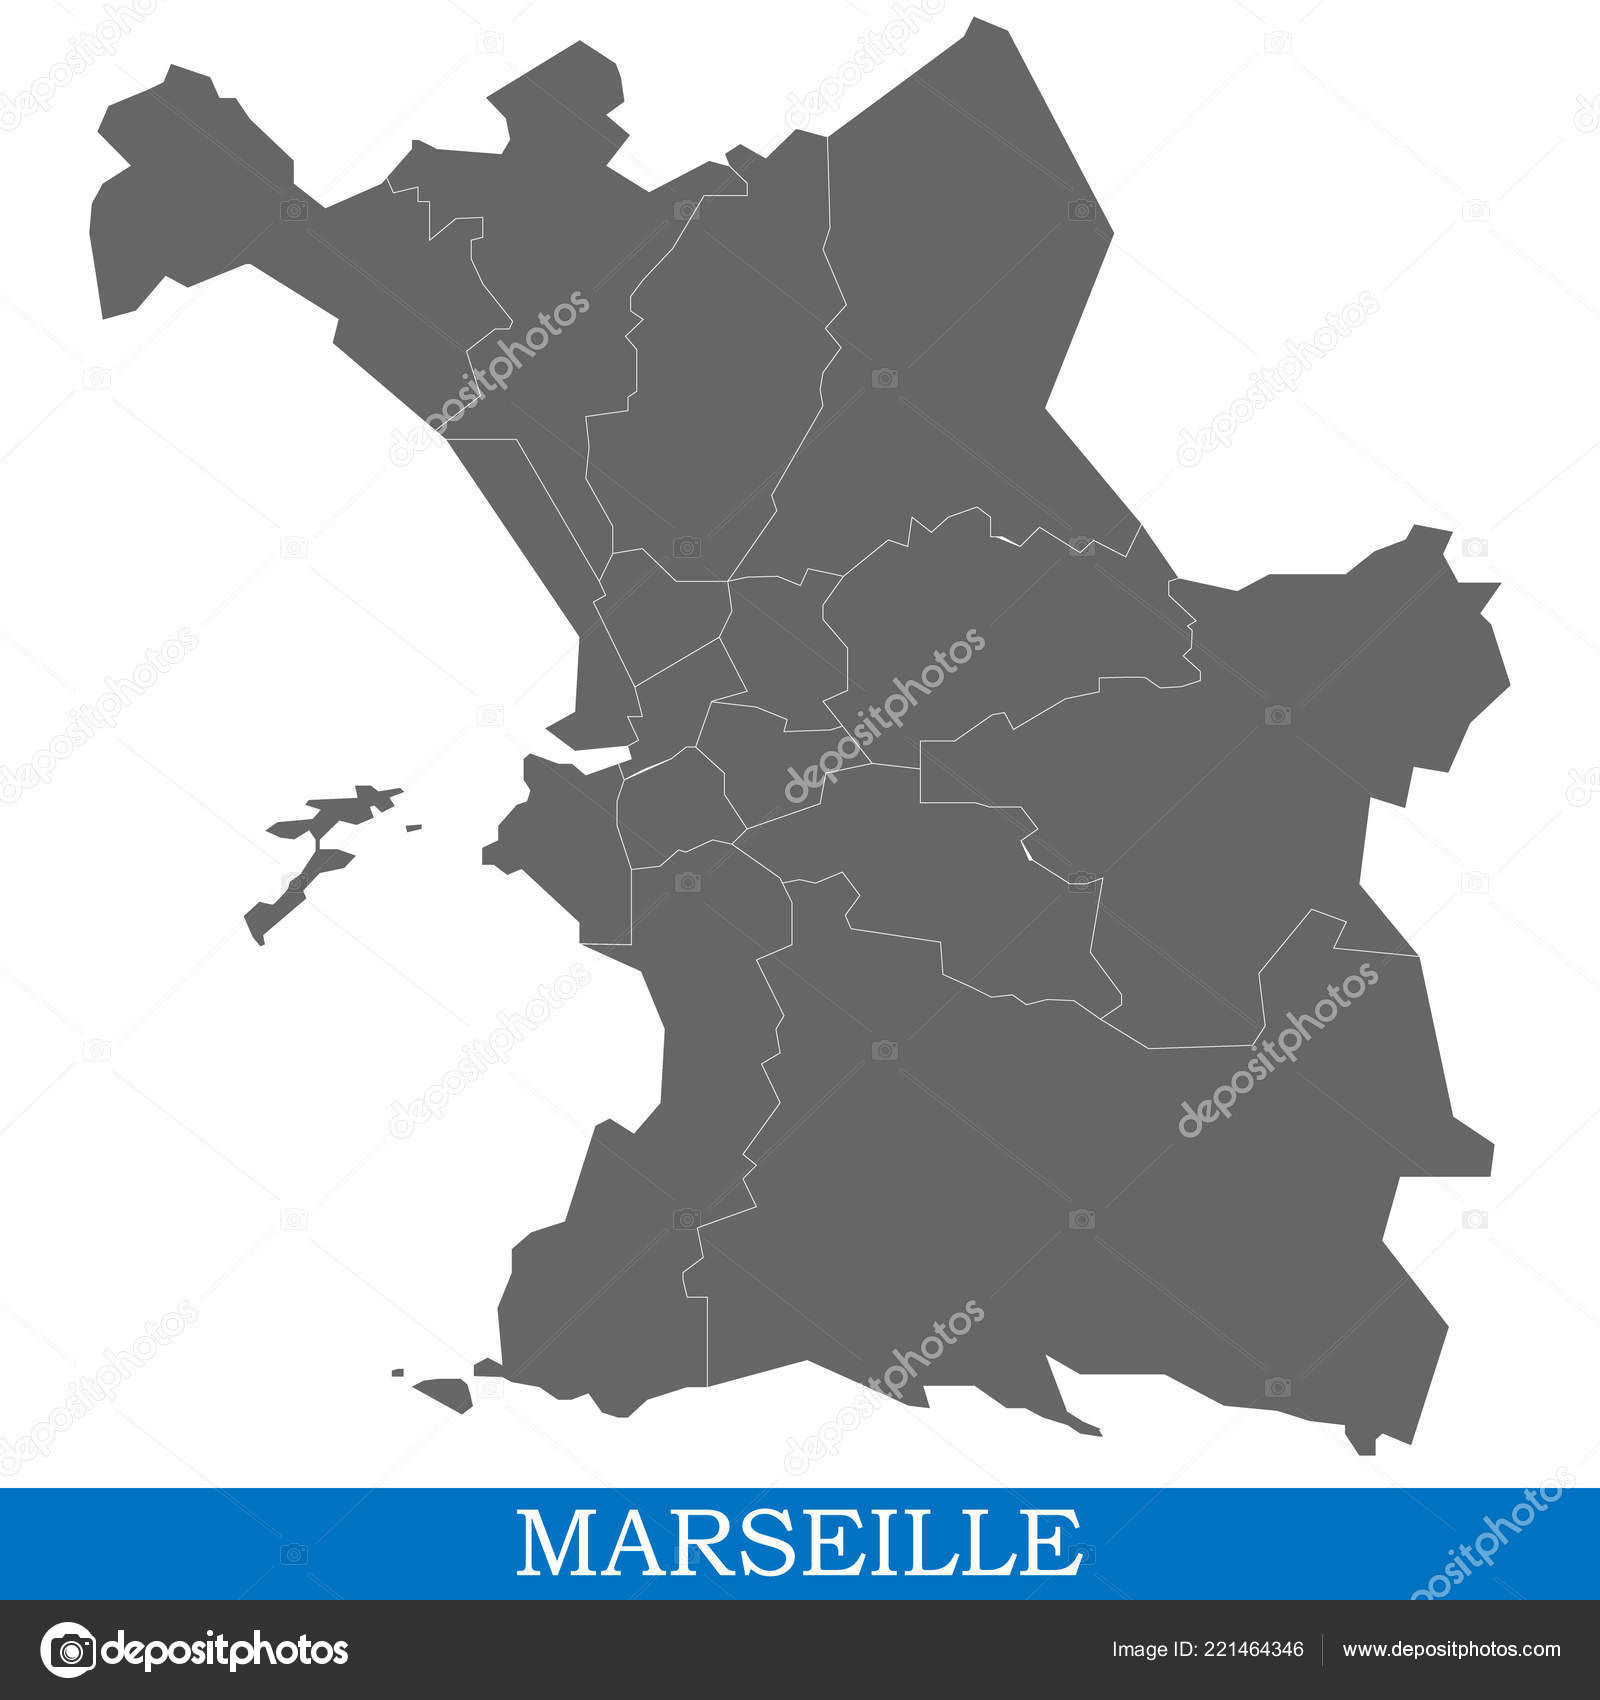 Marseille On Map Of France.High Quality Map Marseille City France Borders Districts Stock